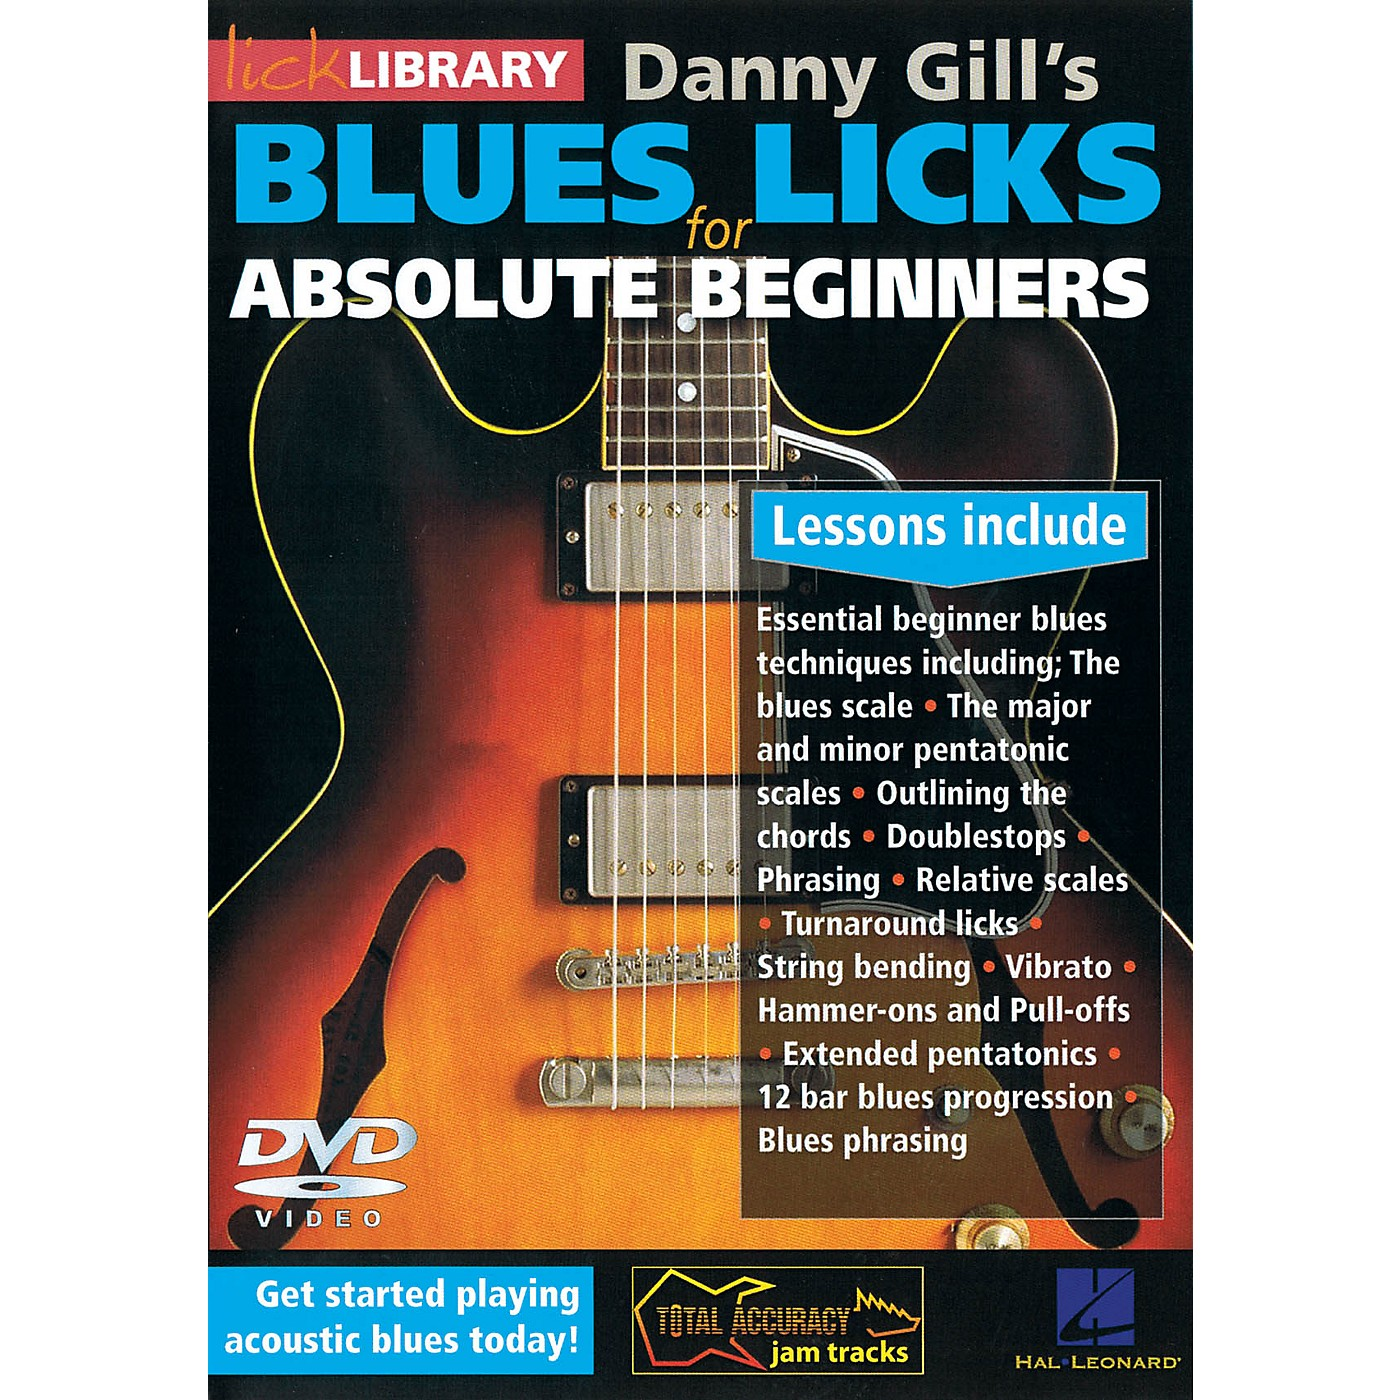 Licklibrary Blues Licks for Absolute Beginners Lick Library Series DVD Written by Danny Gill thumbnail